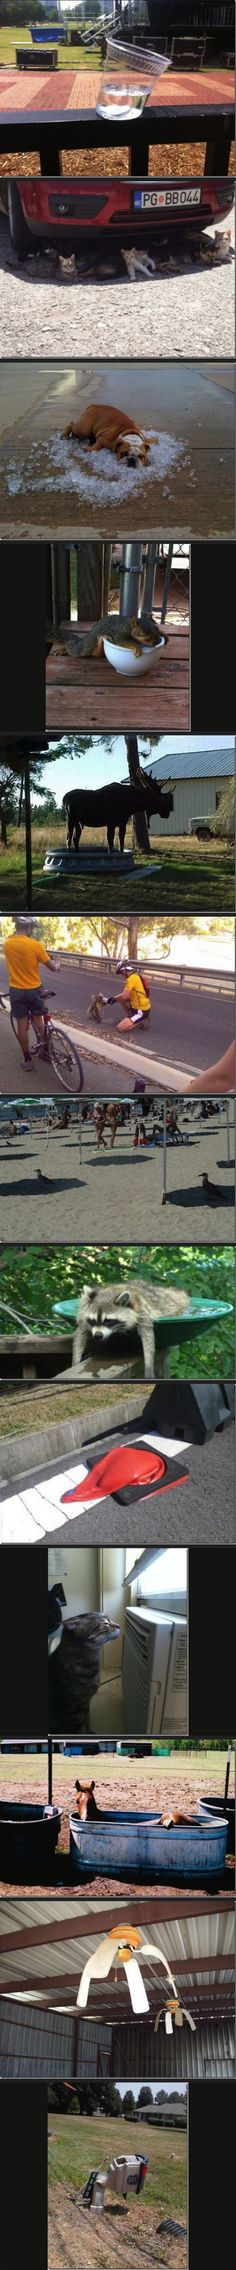 Funny Pictures of the week -71 pics- You Know It's Hot When ... (Compilation)